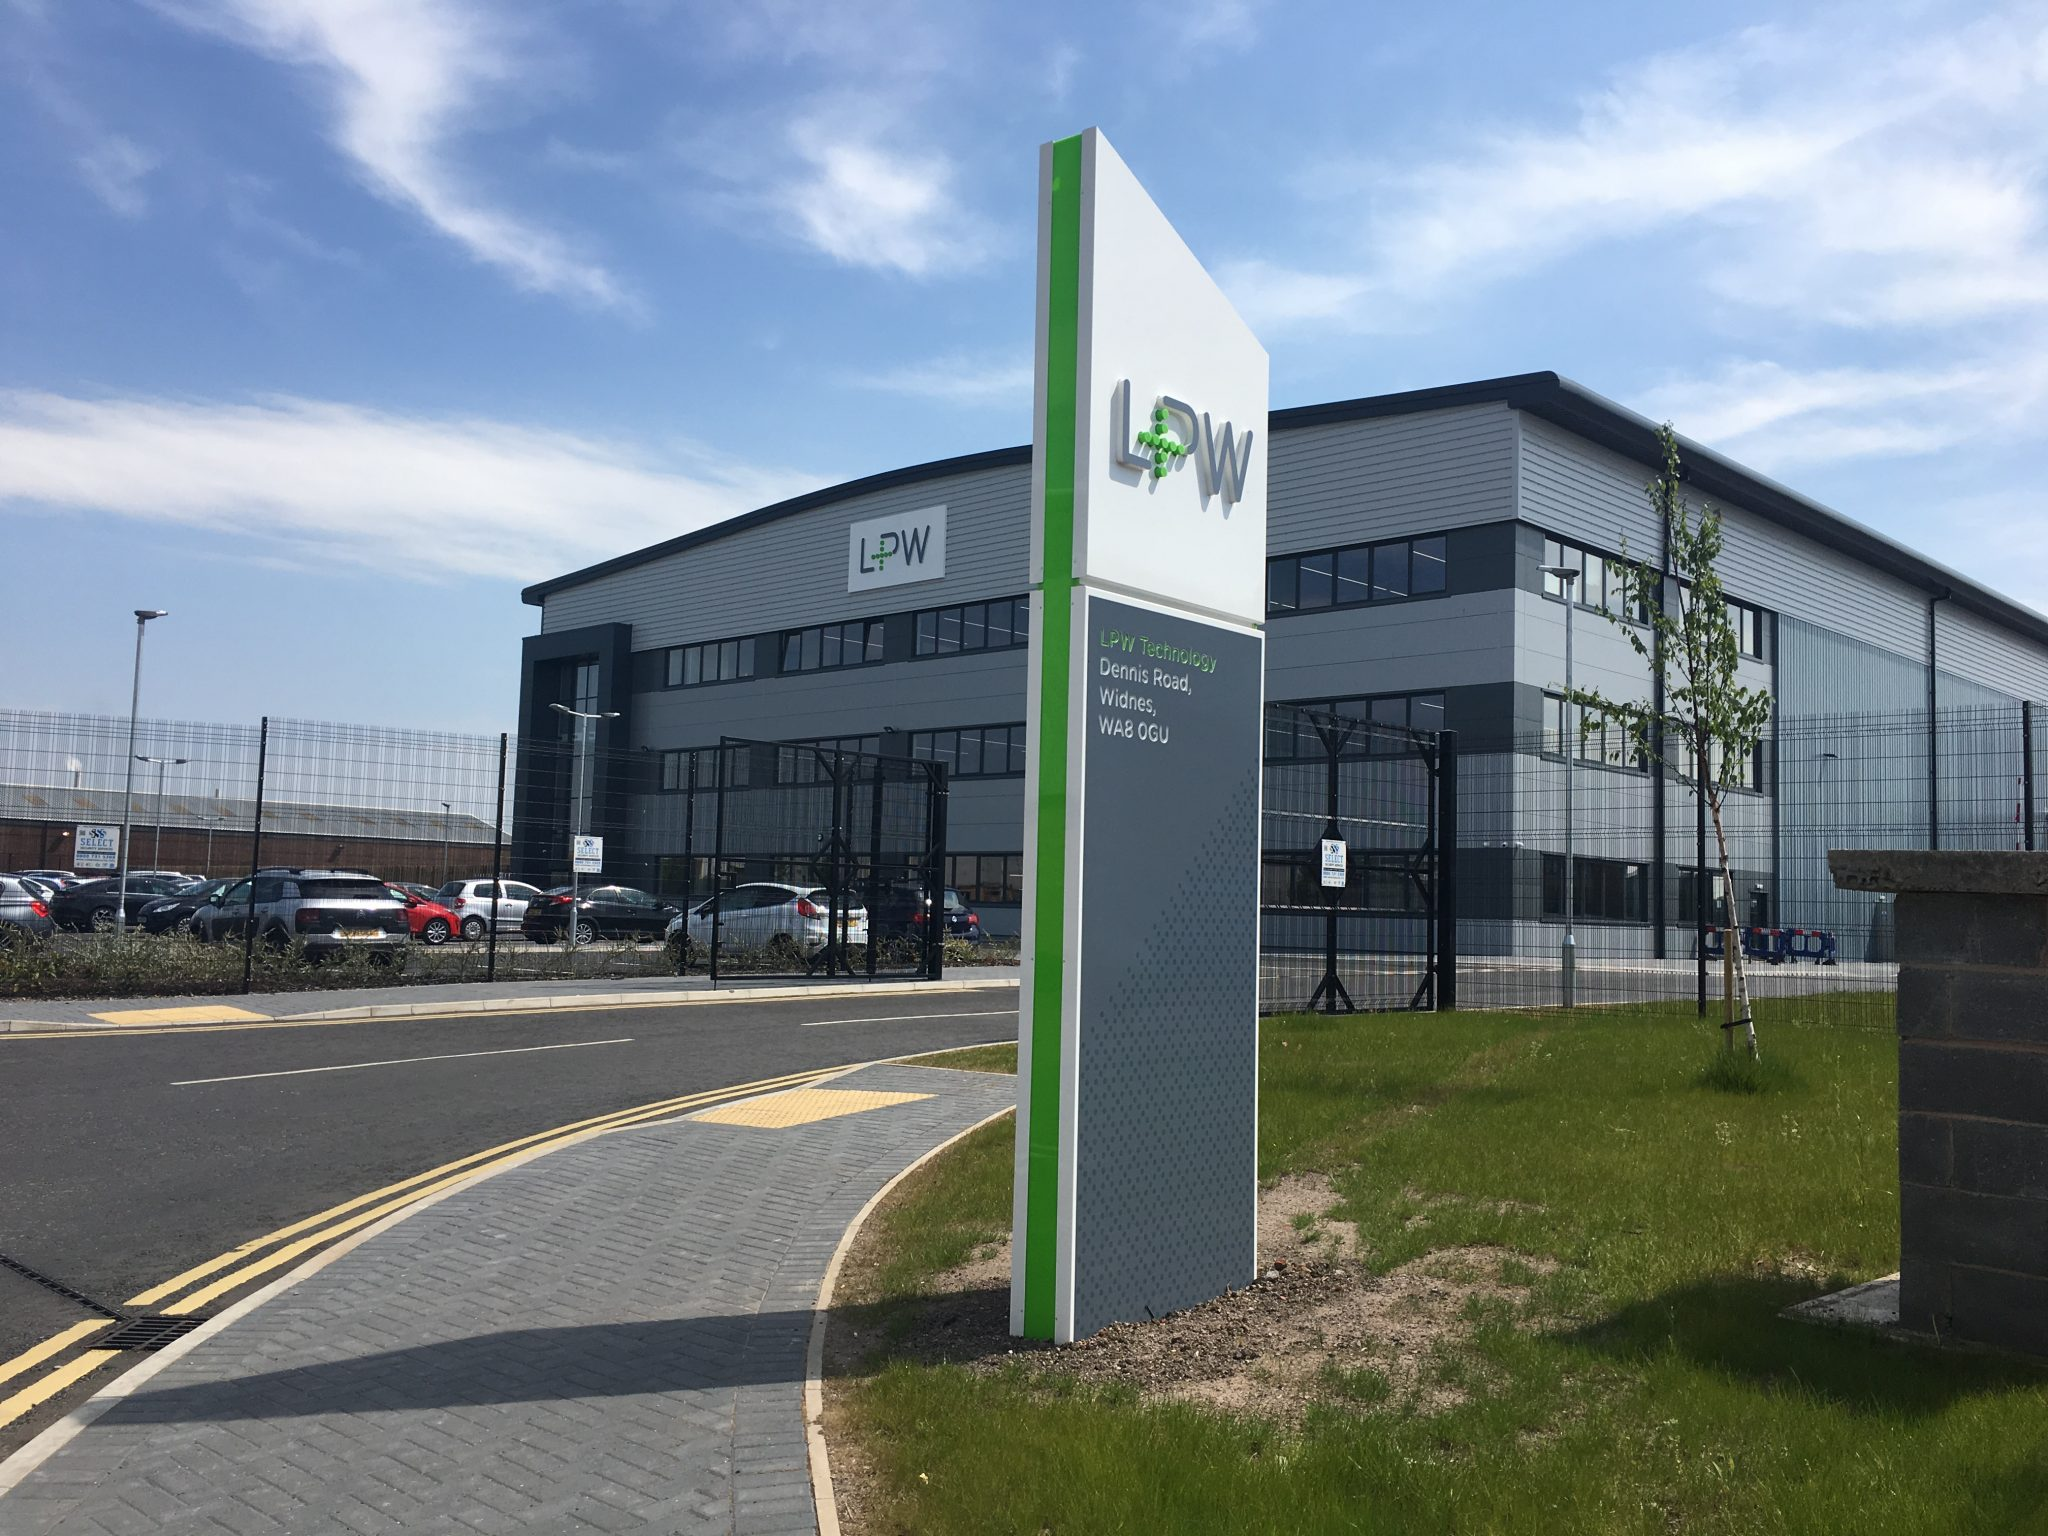 Featured image shows LPW Technology's new metal powder production facility in Halton, Cheshire.